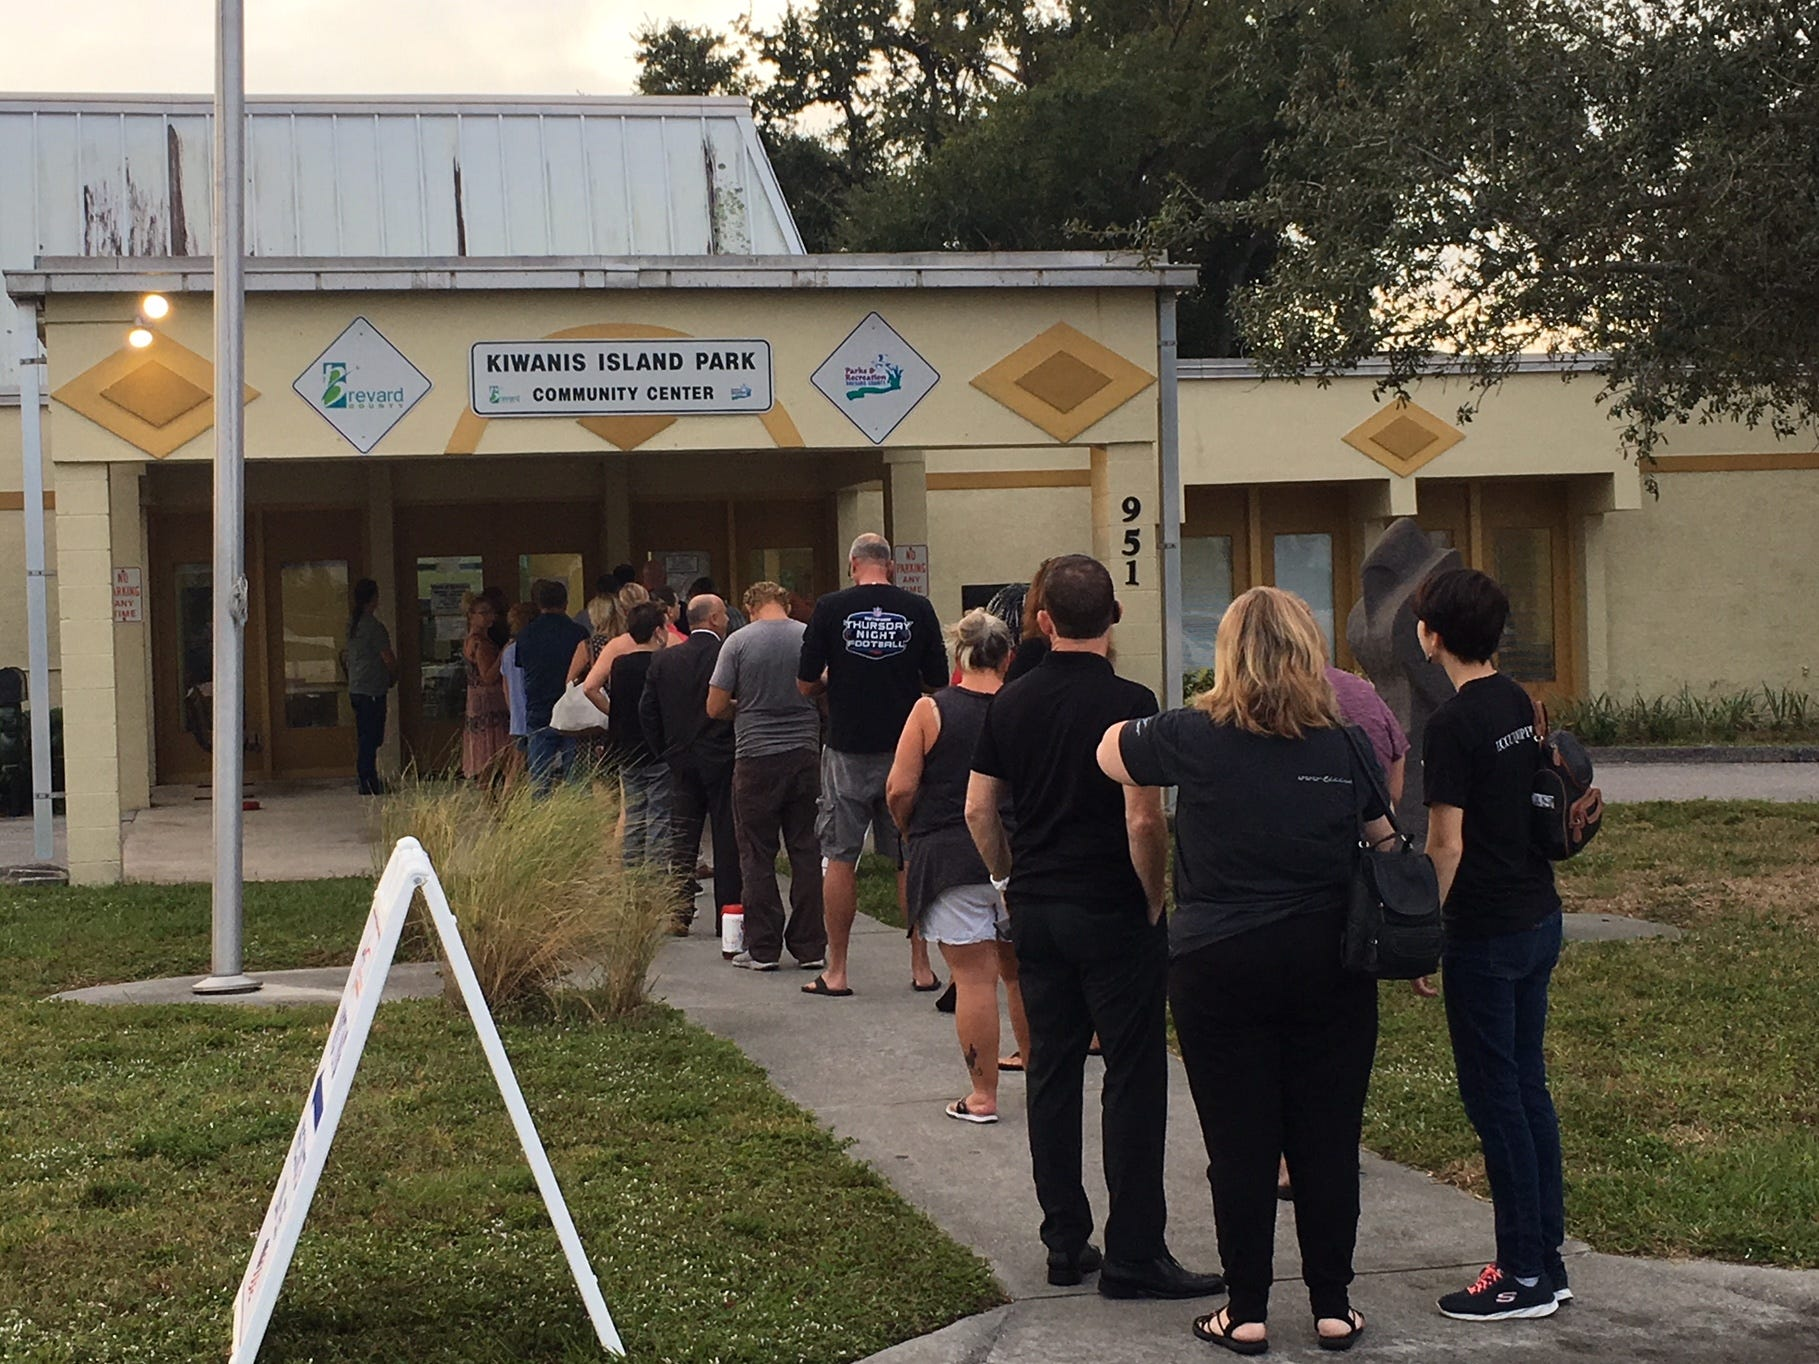 Voter stand in line to vote at Kiwanis Island Park in Merritt Island Nov. 6, 2018.